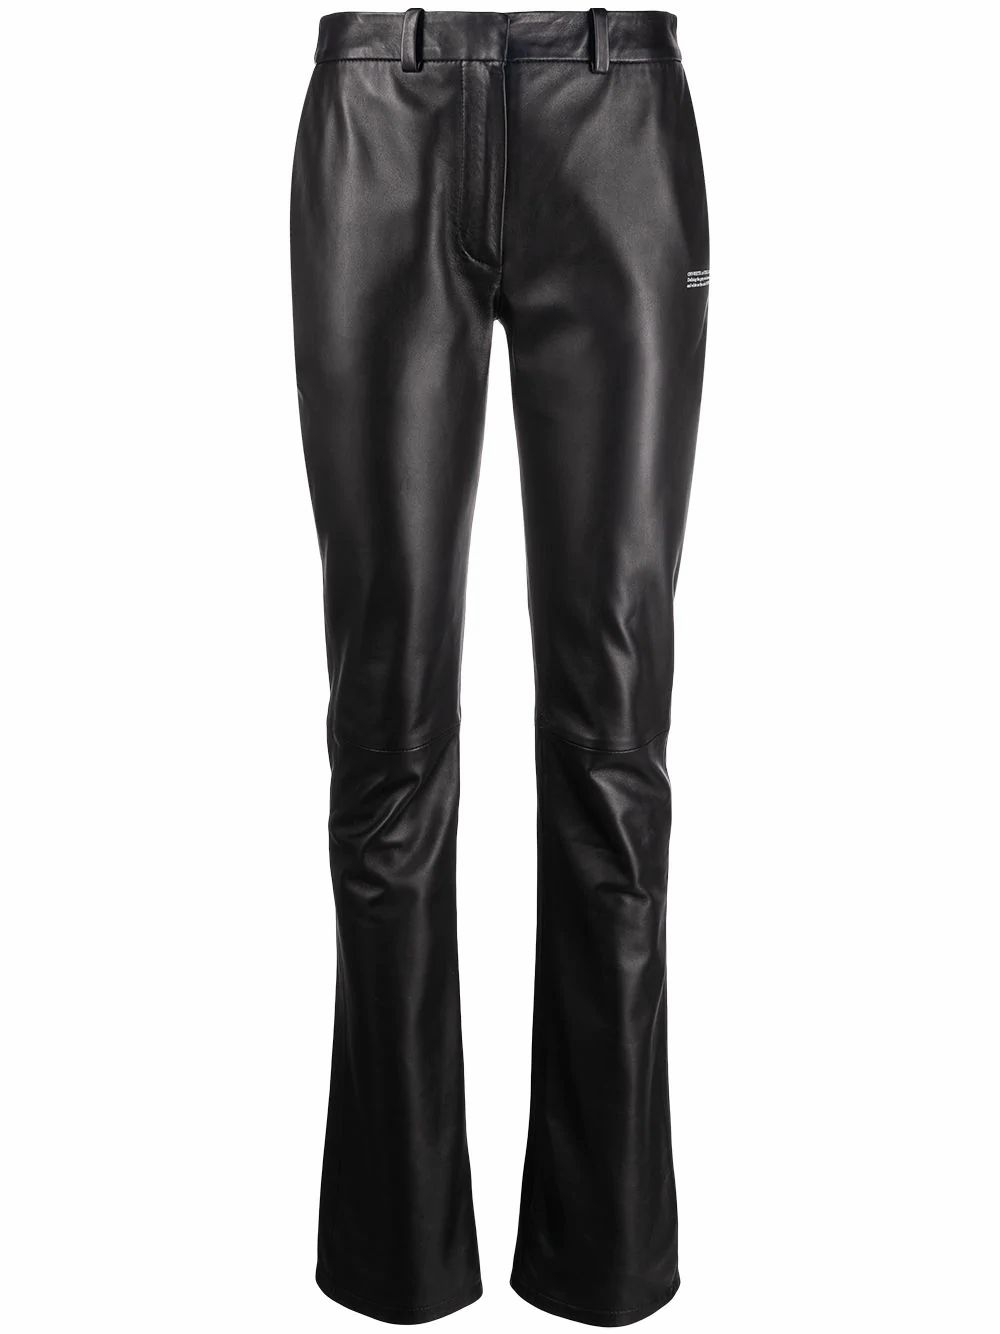 Off-White Leathers OFF-WHITE WOMEN'S BLACK LEATHER PANTS